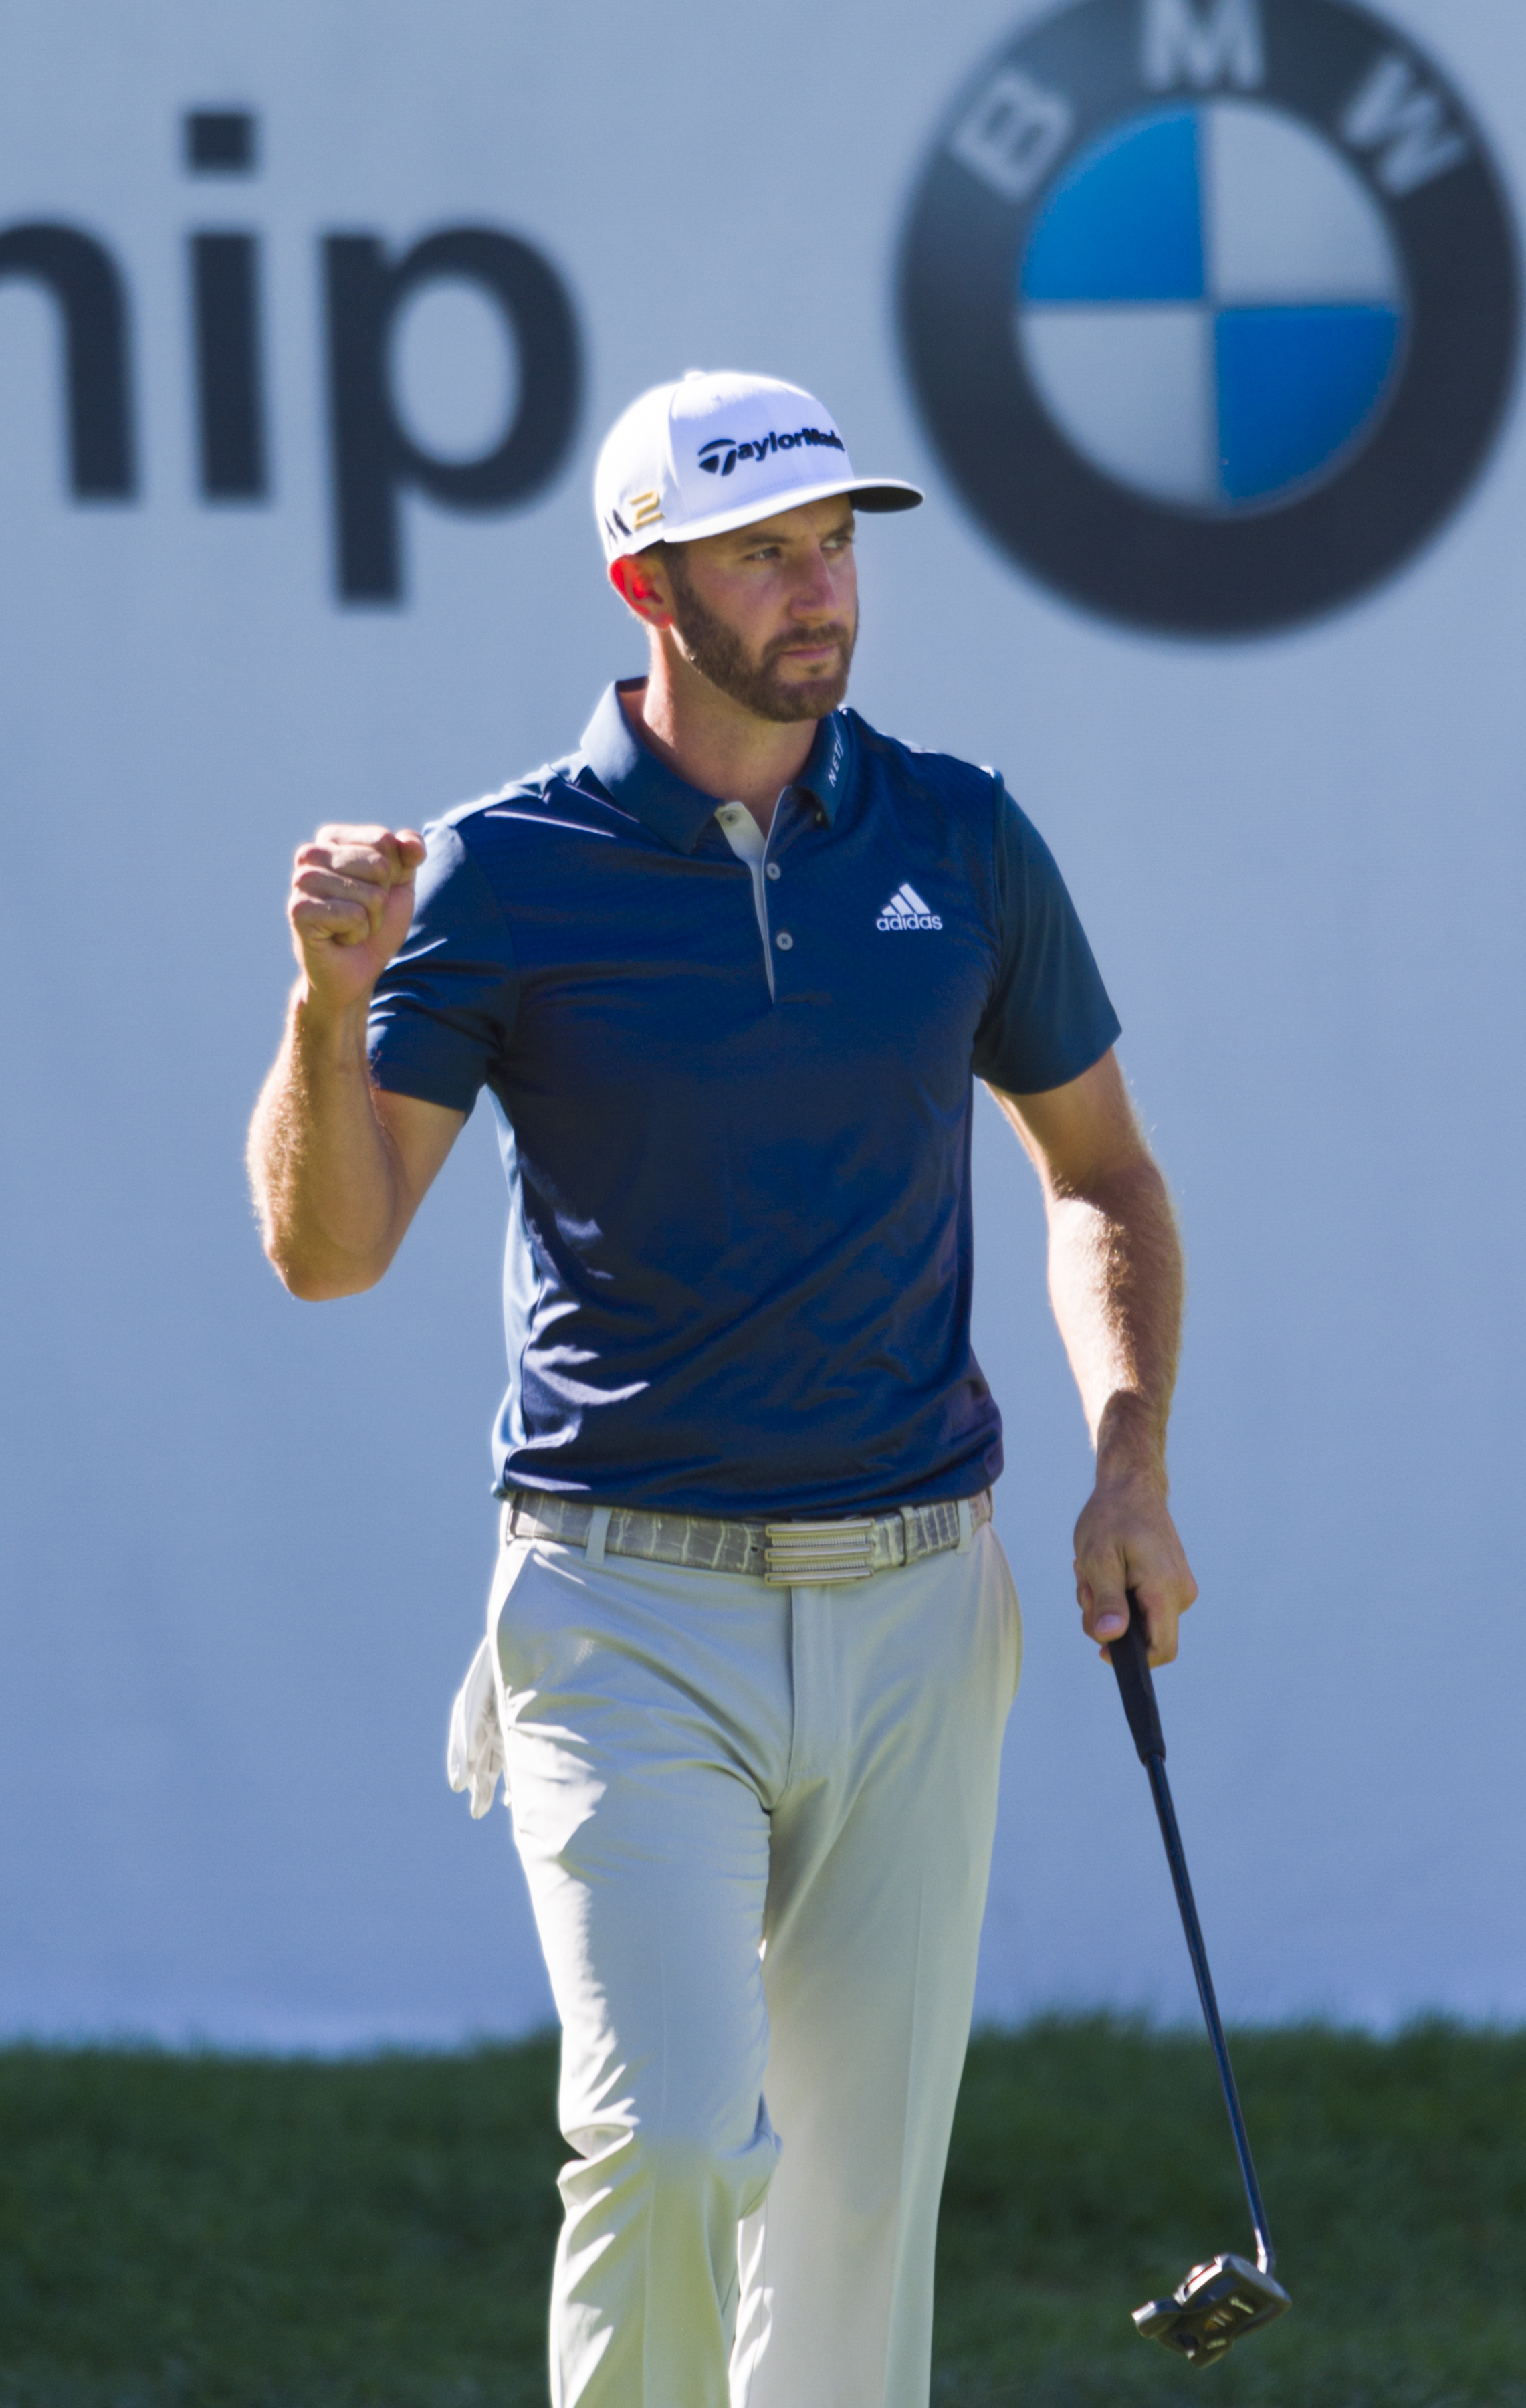 Dustin Johnson reacts after sinking a long putt on the 15th hole during the final round of the BMW Championship golf tournament at Crooked Stick Golf Club in Carmel, Ind., Sunday, Sept. 11, 2016. Johnson won the tournament. (AP Photo/Doug McSchooler)